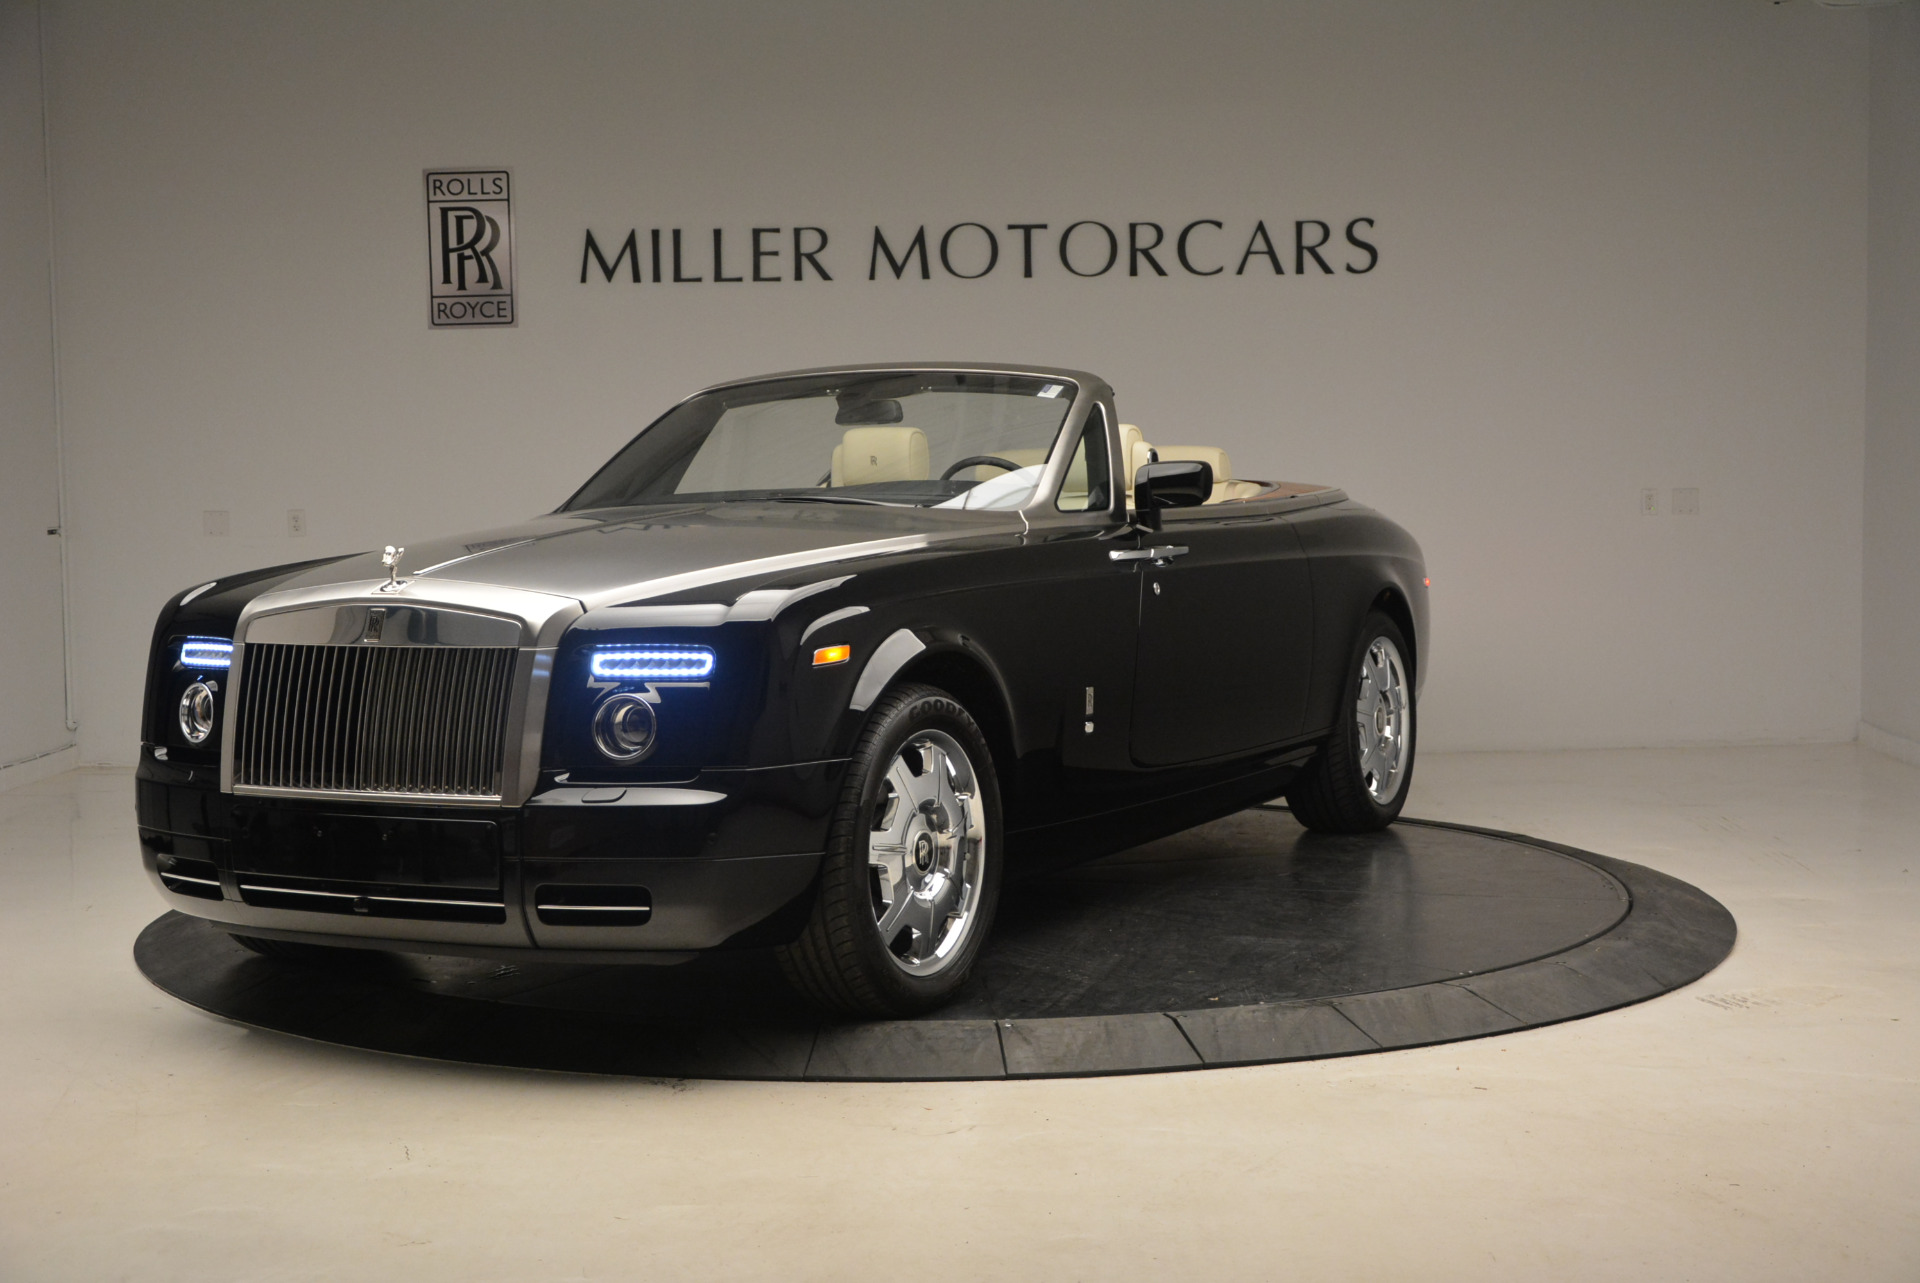 Used 2009 Rolls-Royce Phantom Drophead Coupe for sale Sold at Bugatti of Greenwich in Greenwich CT 06830 1